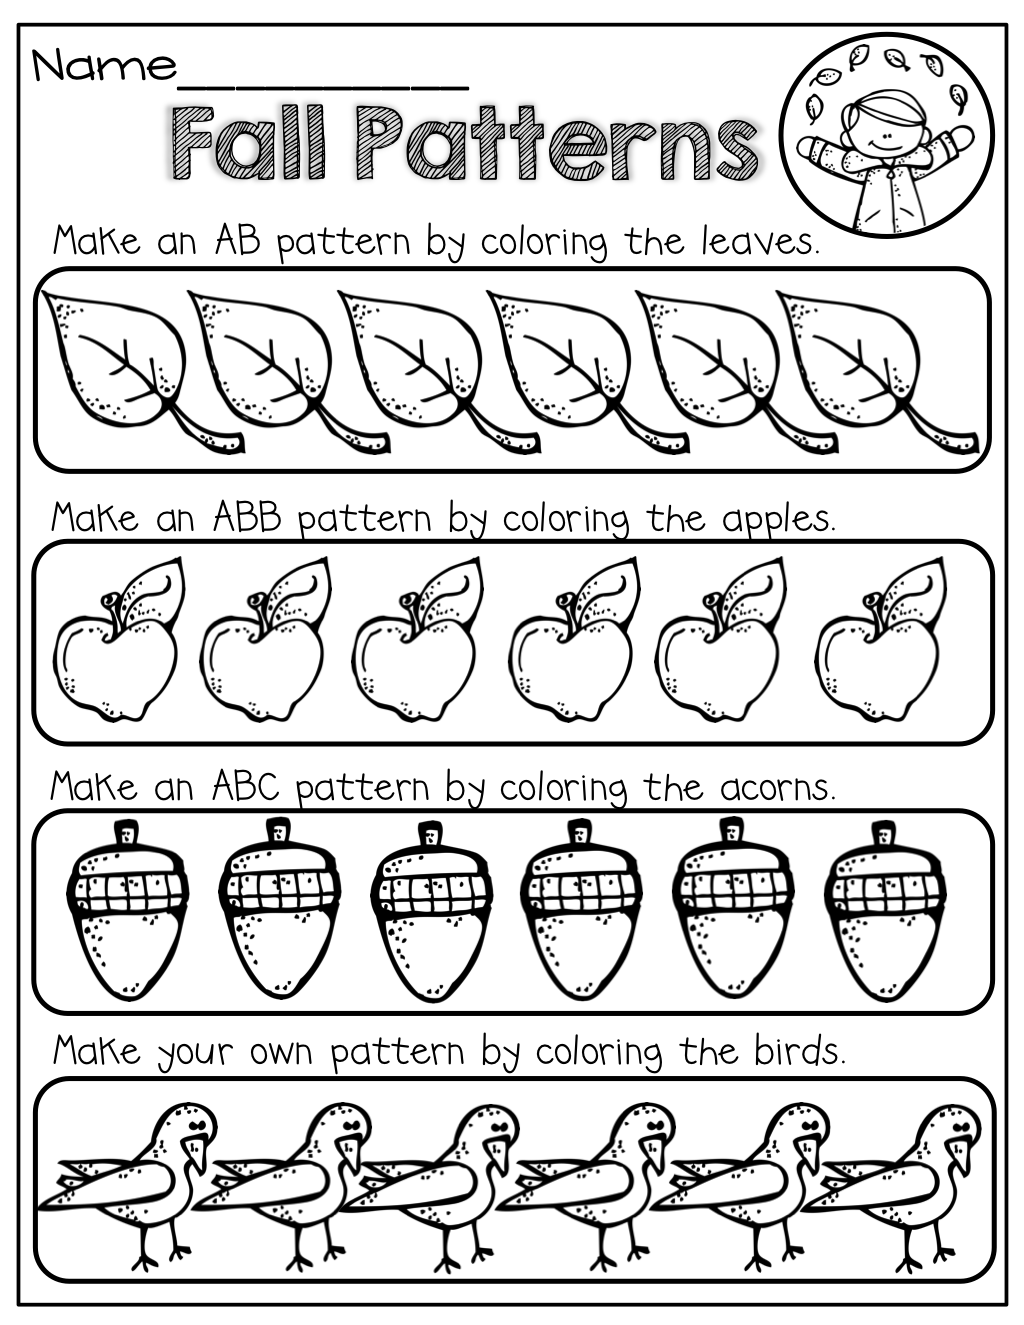 Color to make a Fall Pattern! | KinderLand Collaborative ...